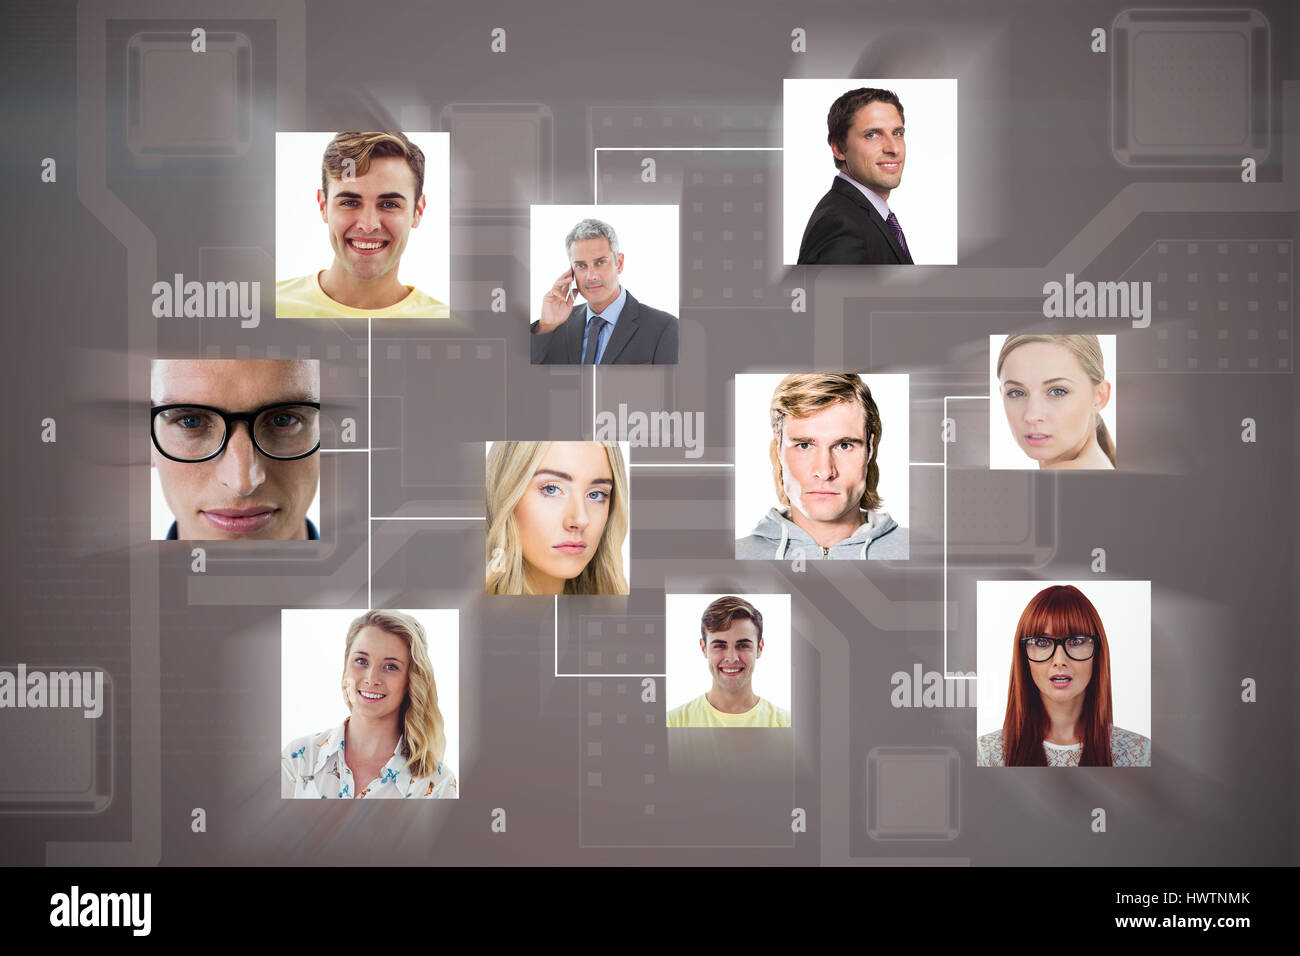 Composite image of headshots against brown background - Stock Image